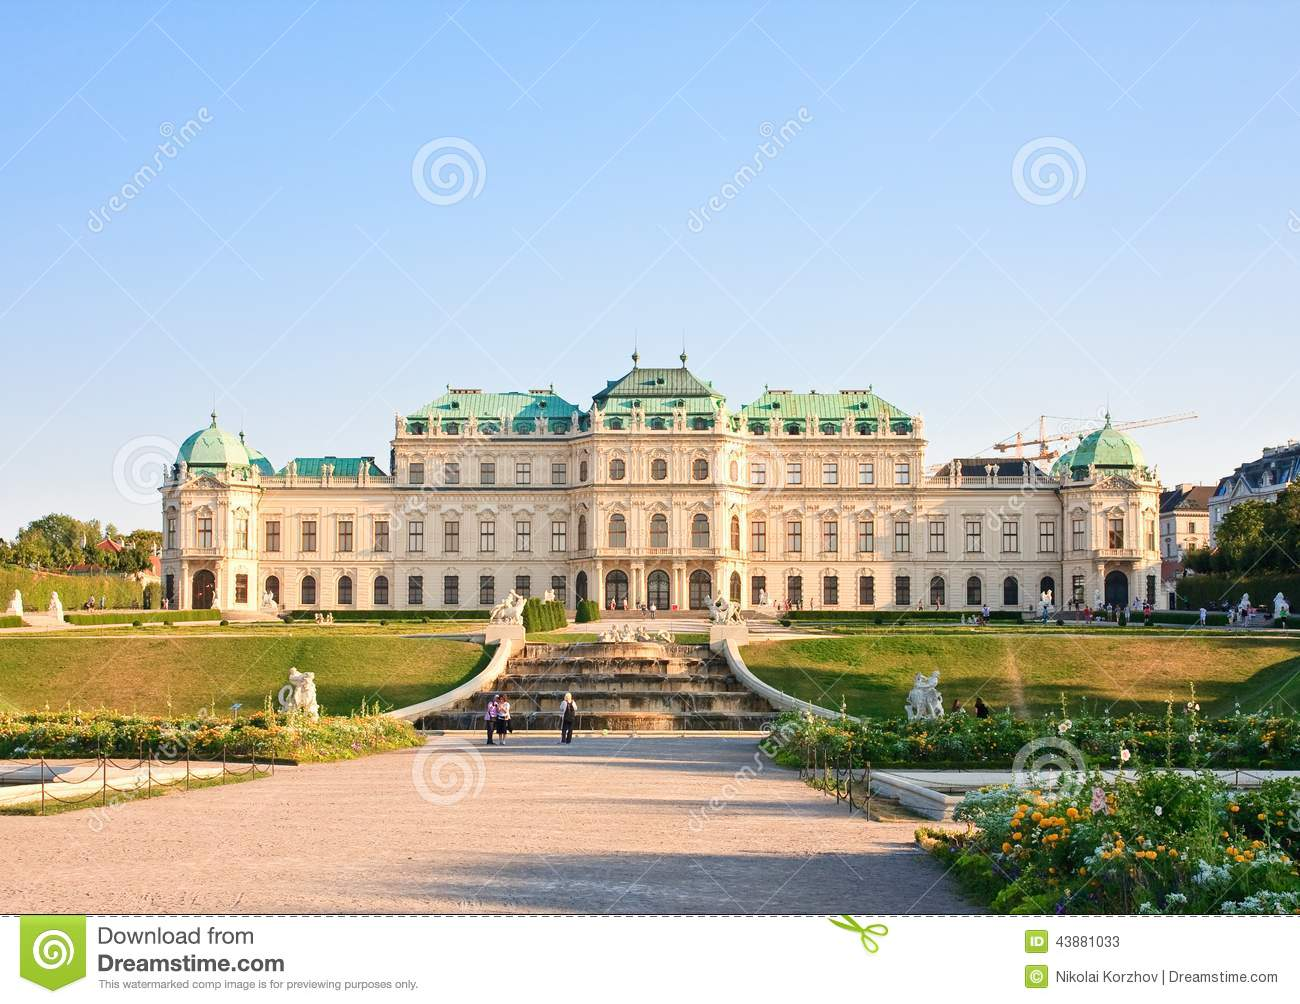 how to get to belvedere palace